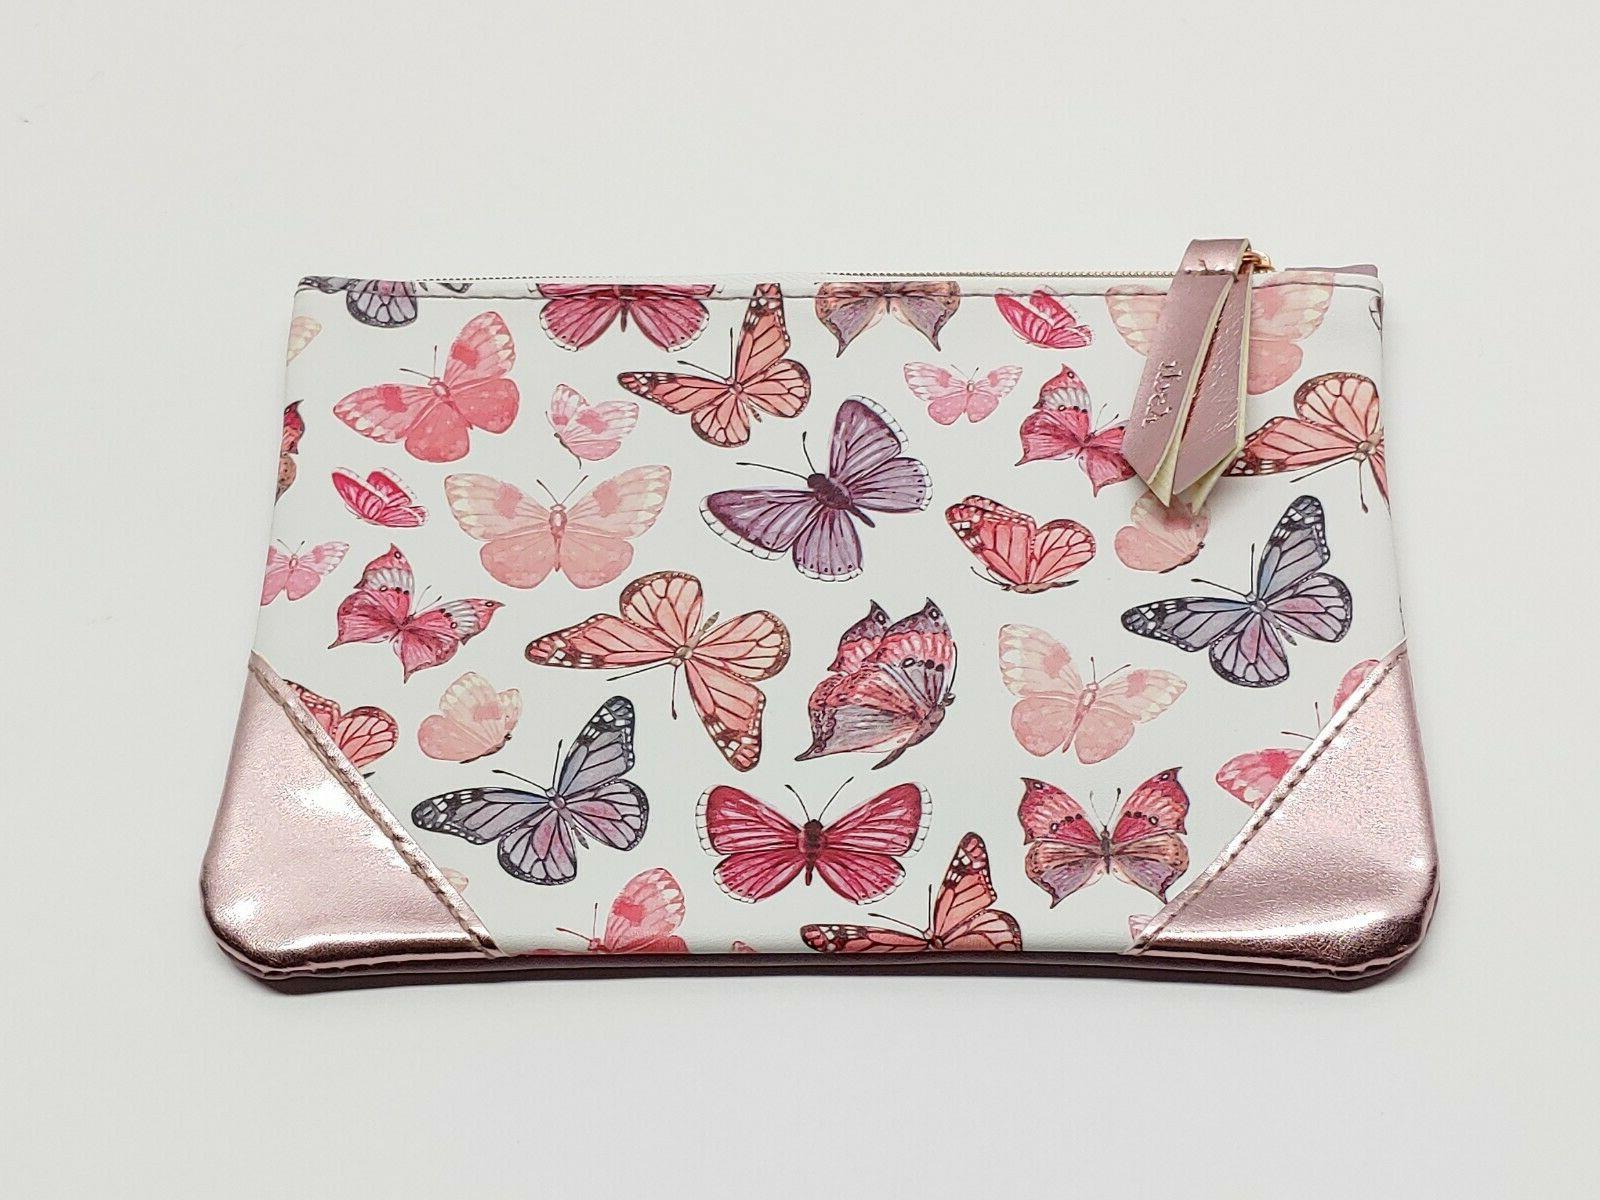 new butterfly makeup cosmetic bag april 2018